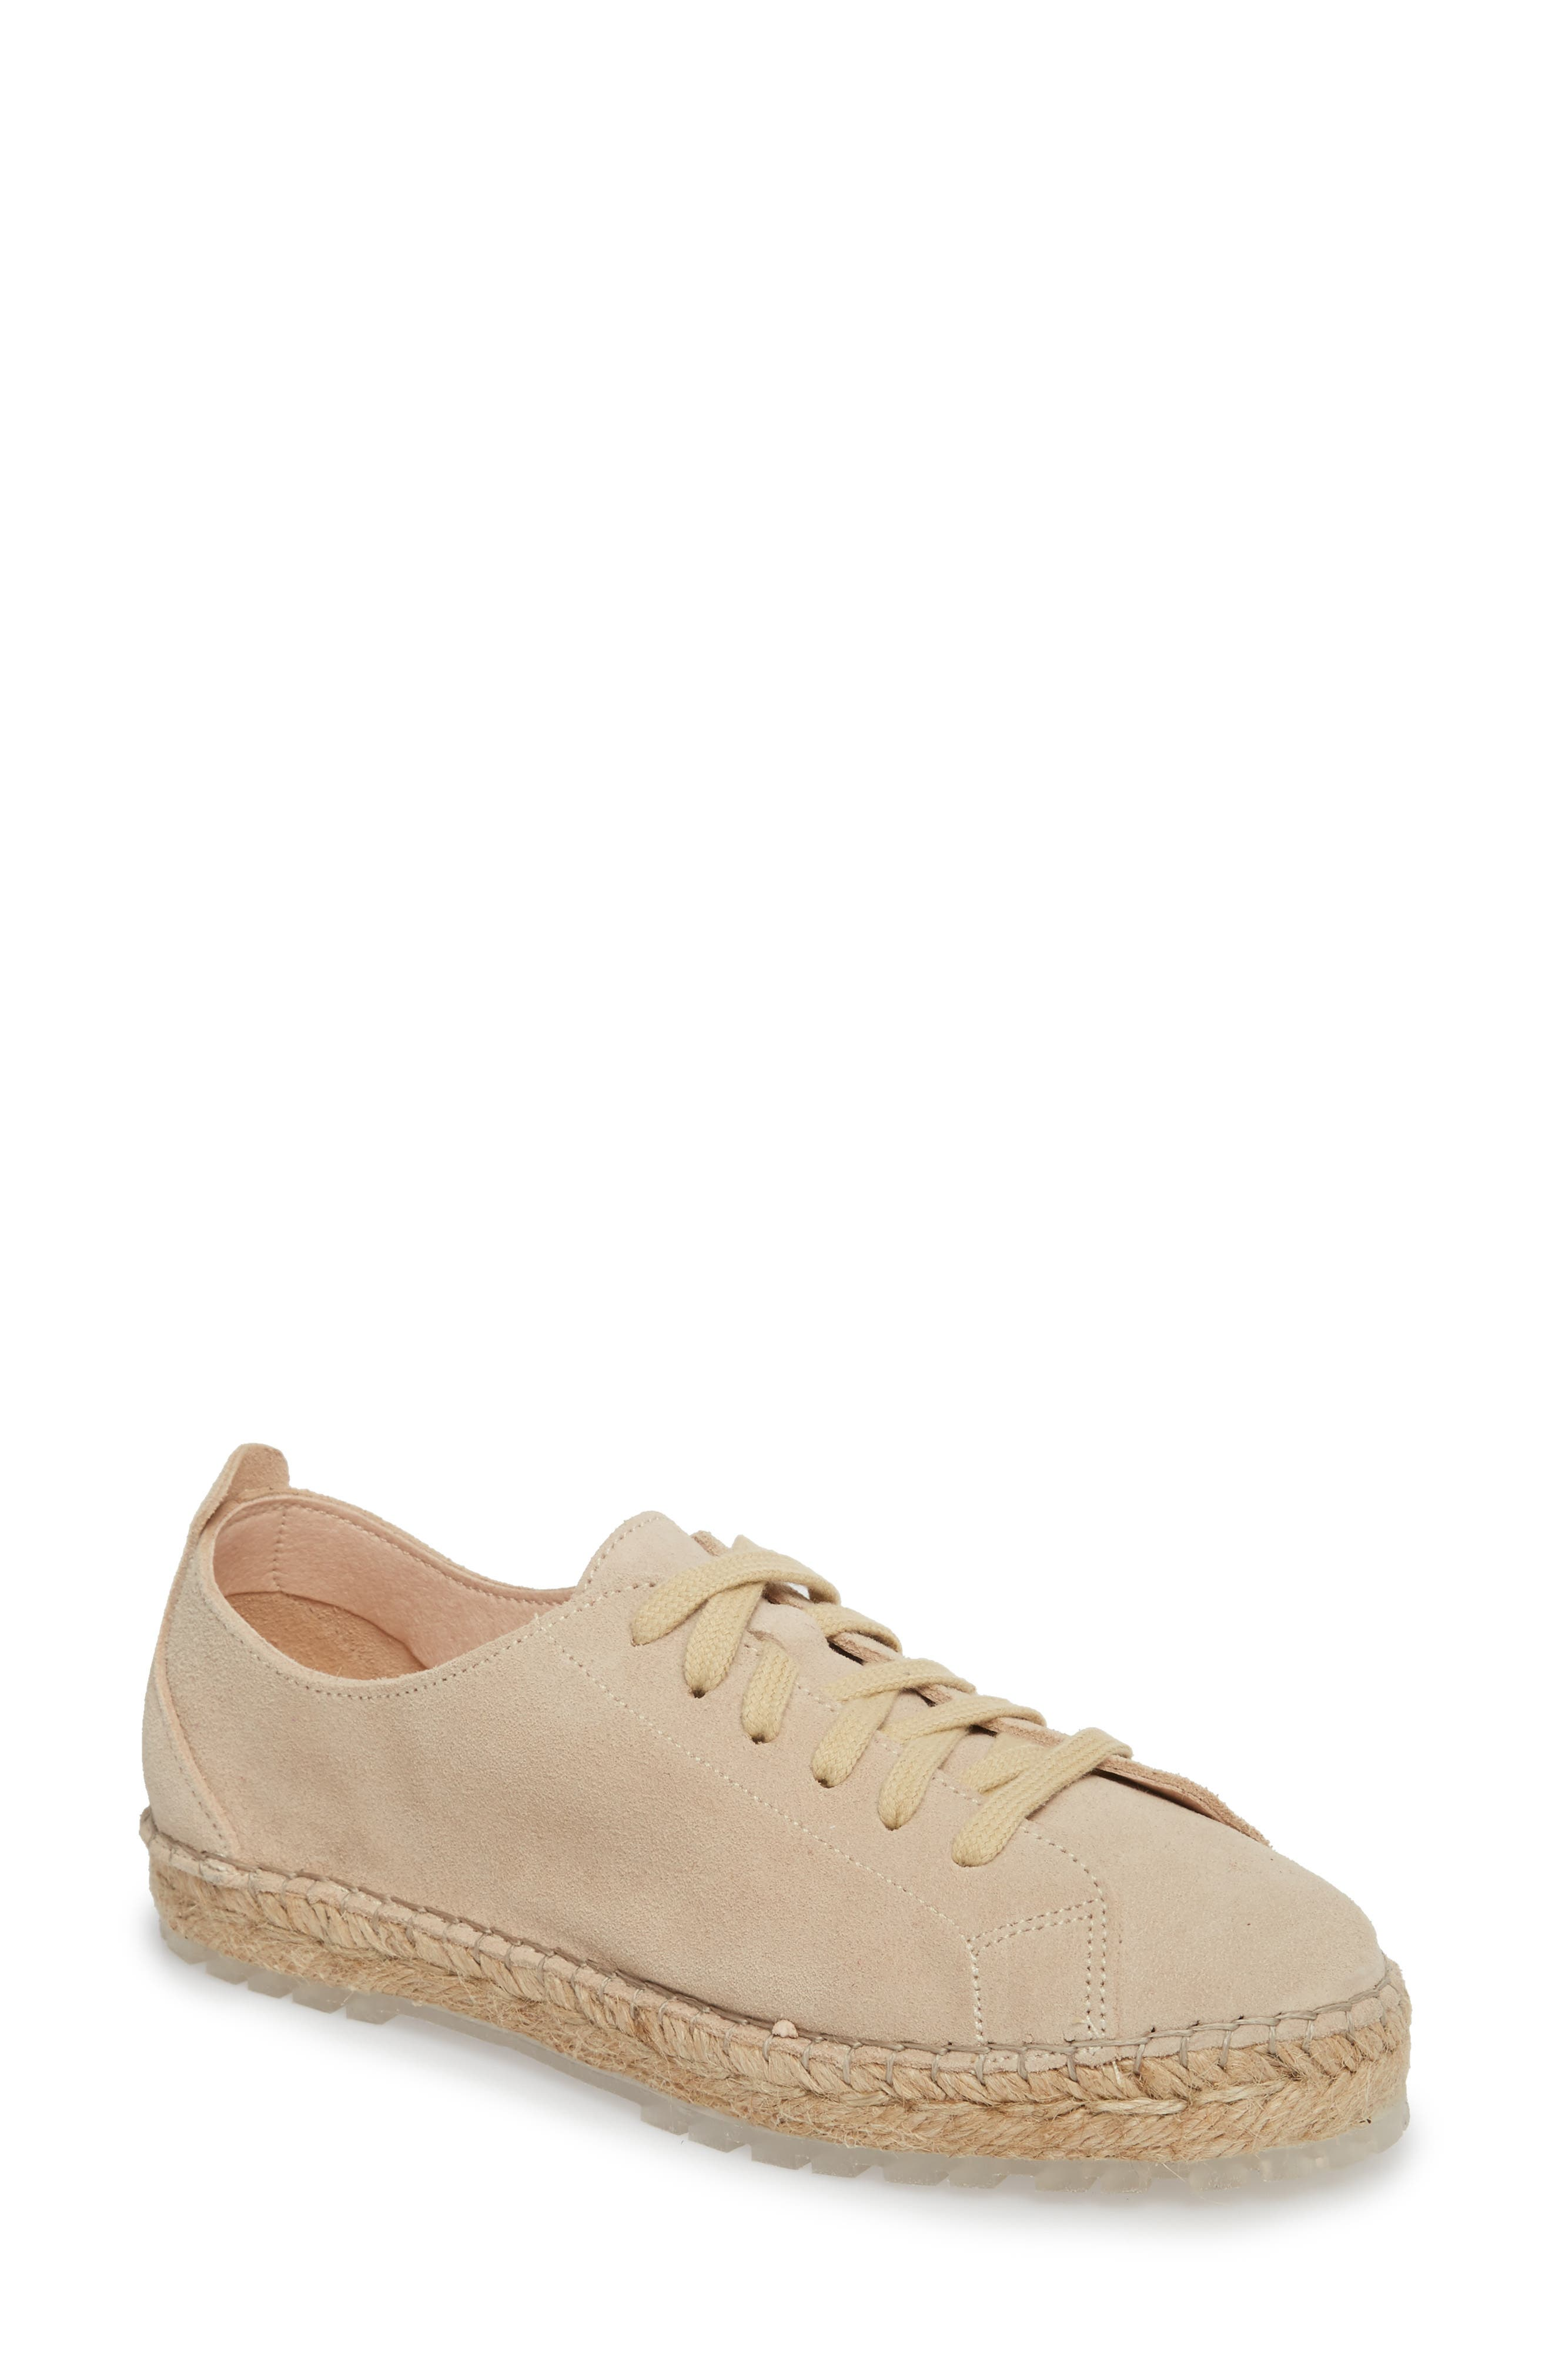 Zane Espadrille Sneaker,                         Main,                         color, Taupe Suede